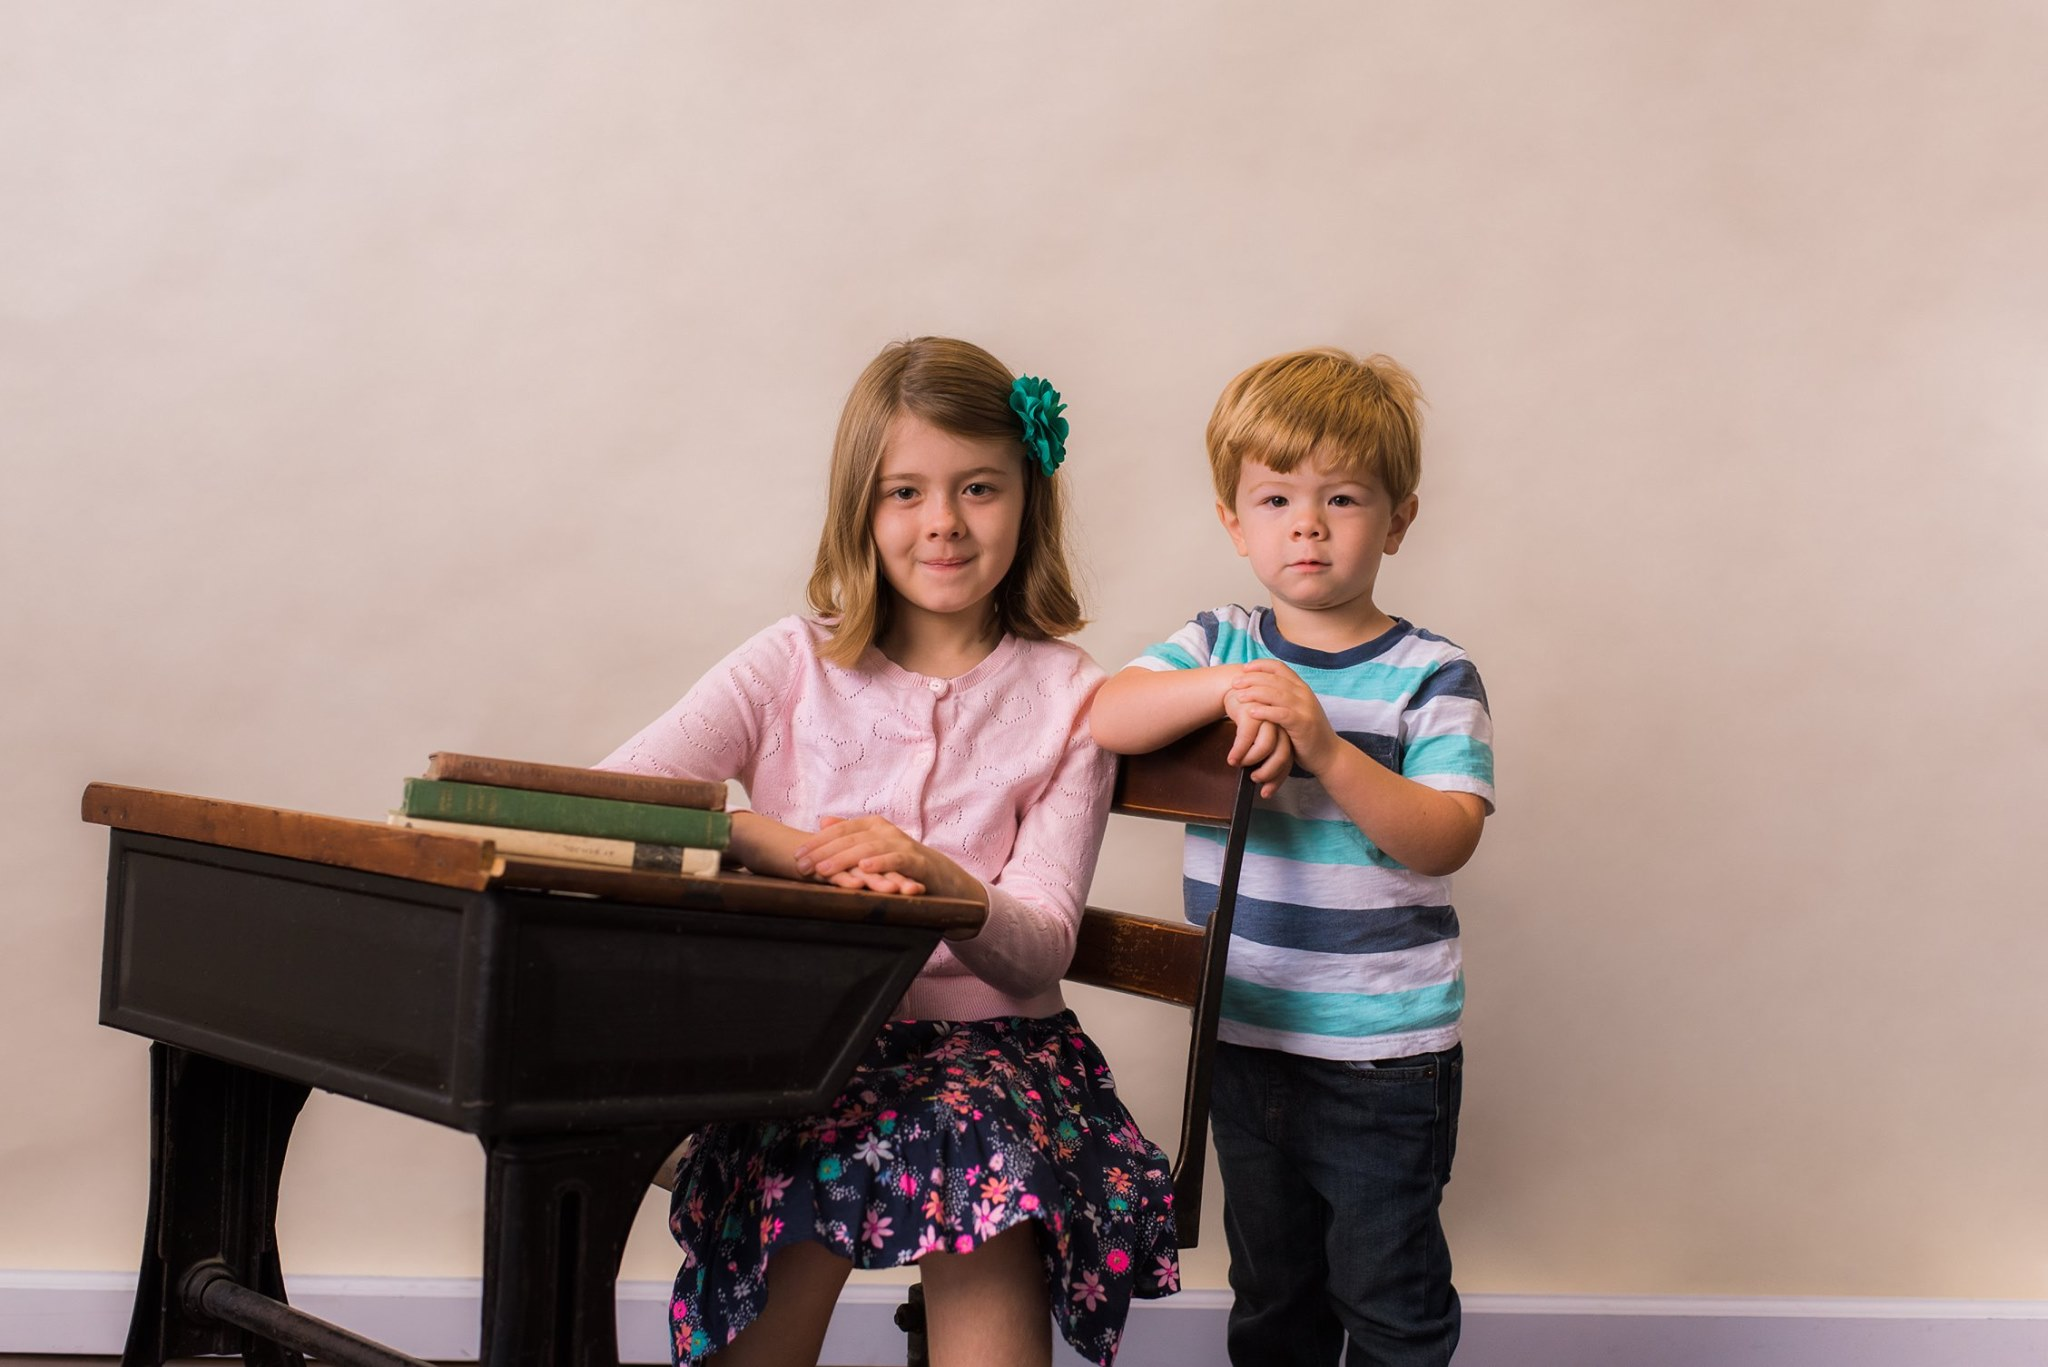 Two kids at school desk